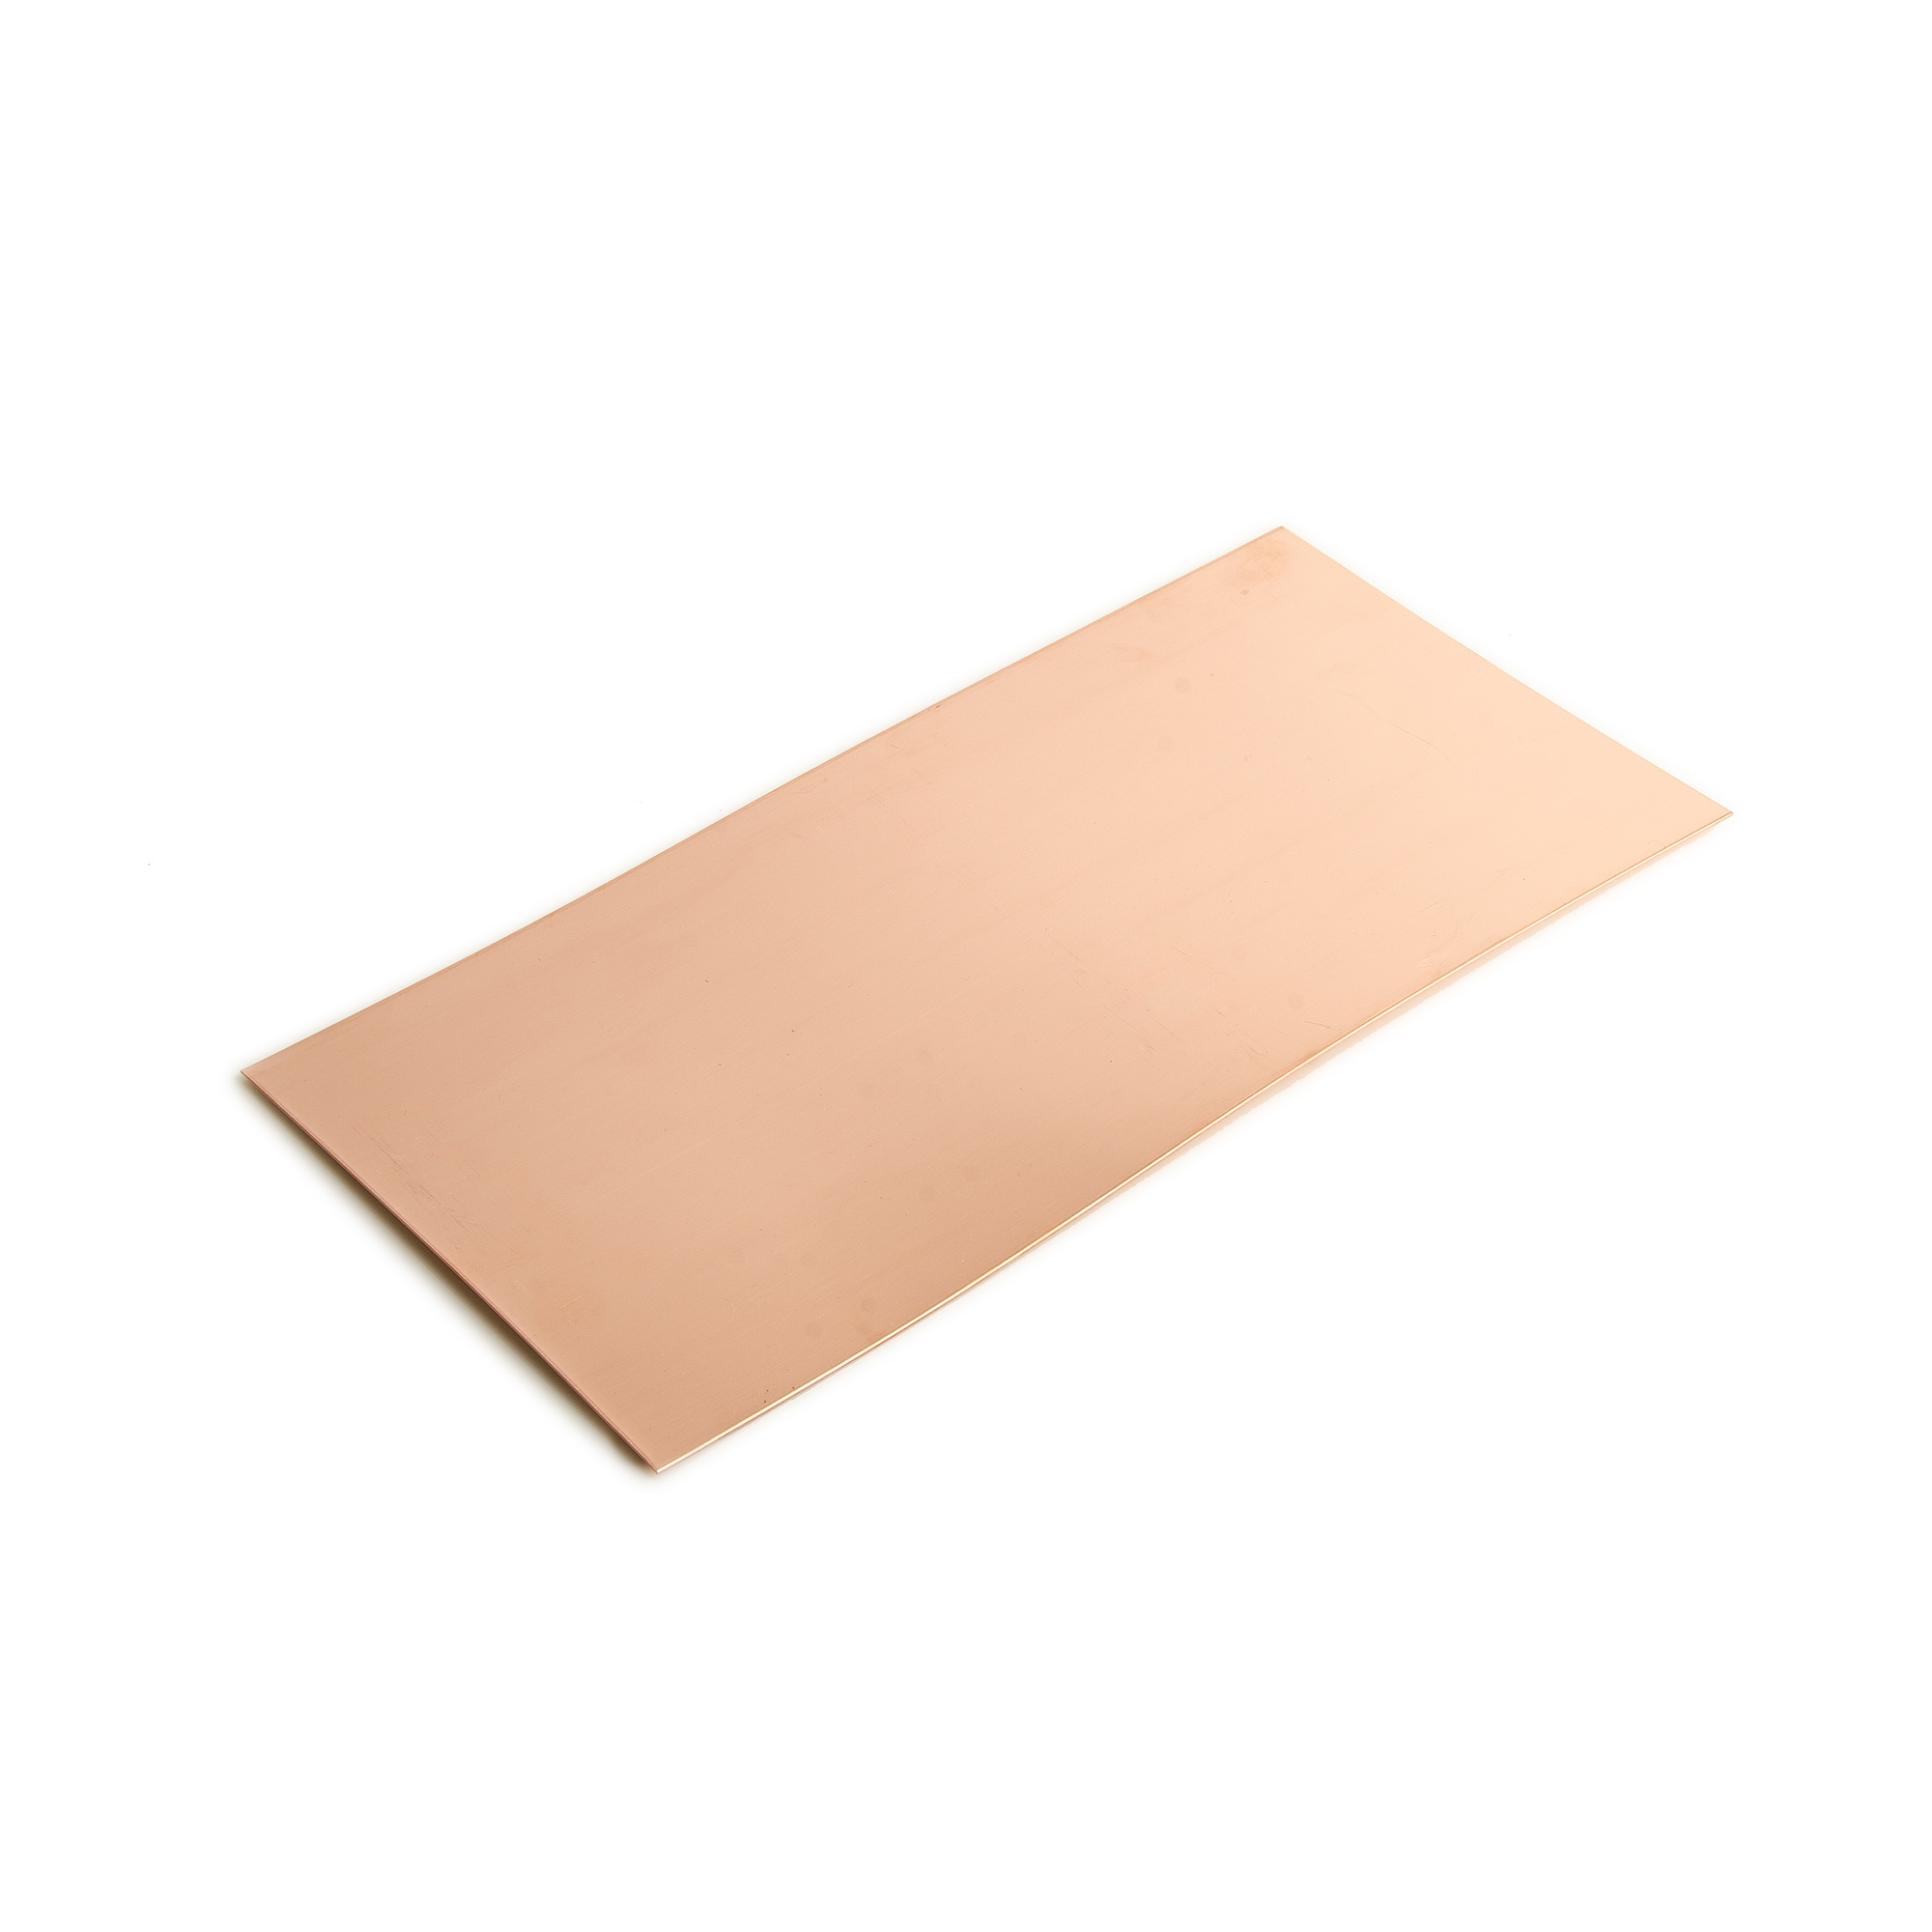 30 Gauge Dead Soft Copper Sheet Metal 6x12 Inch